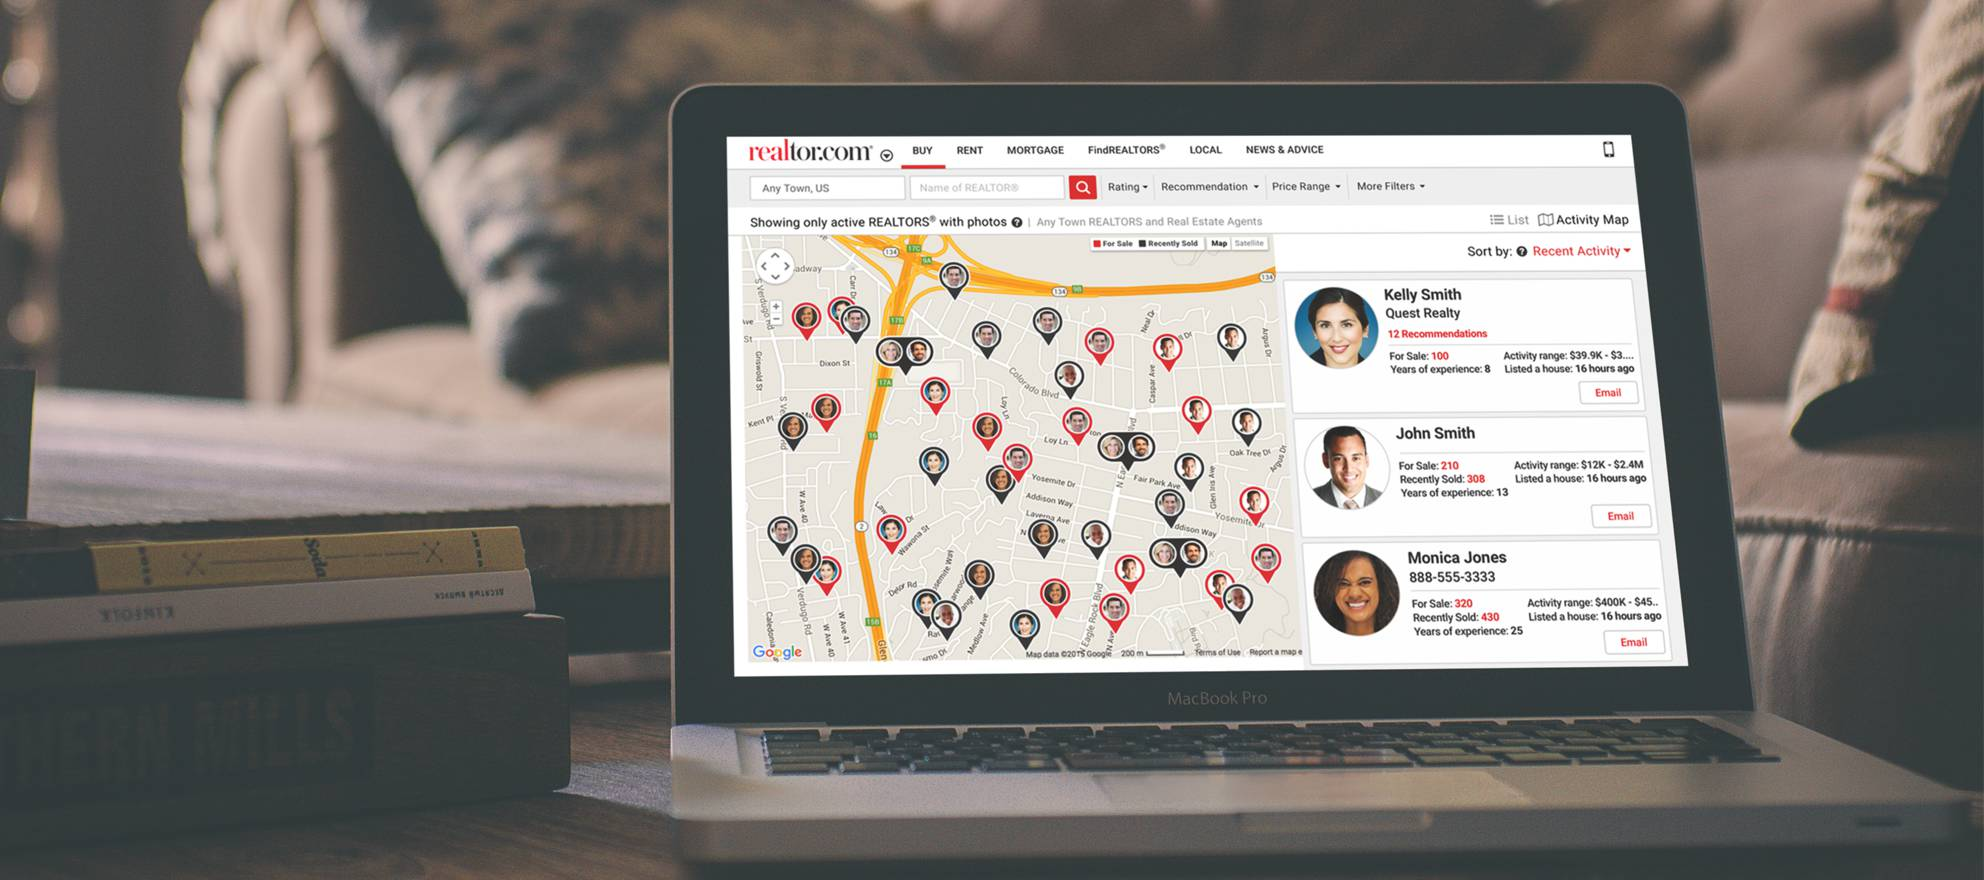 Realtor.com pilots agent profiles with MLS-sourced transaction data, ratings and reviews